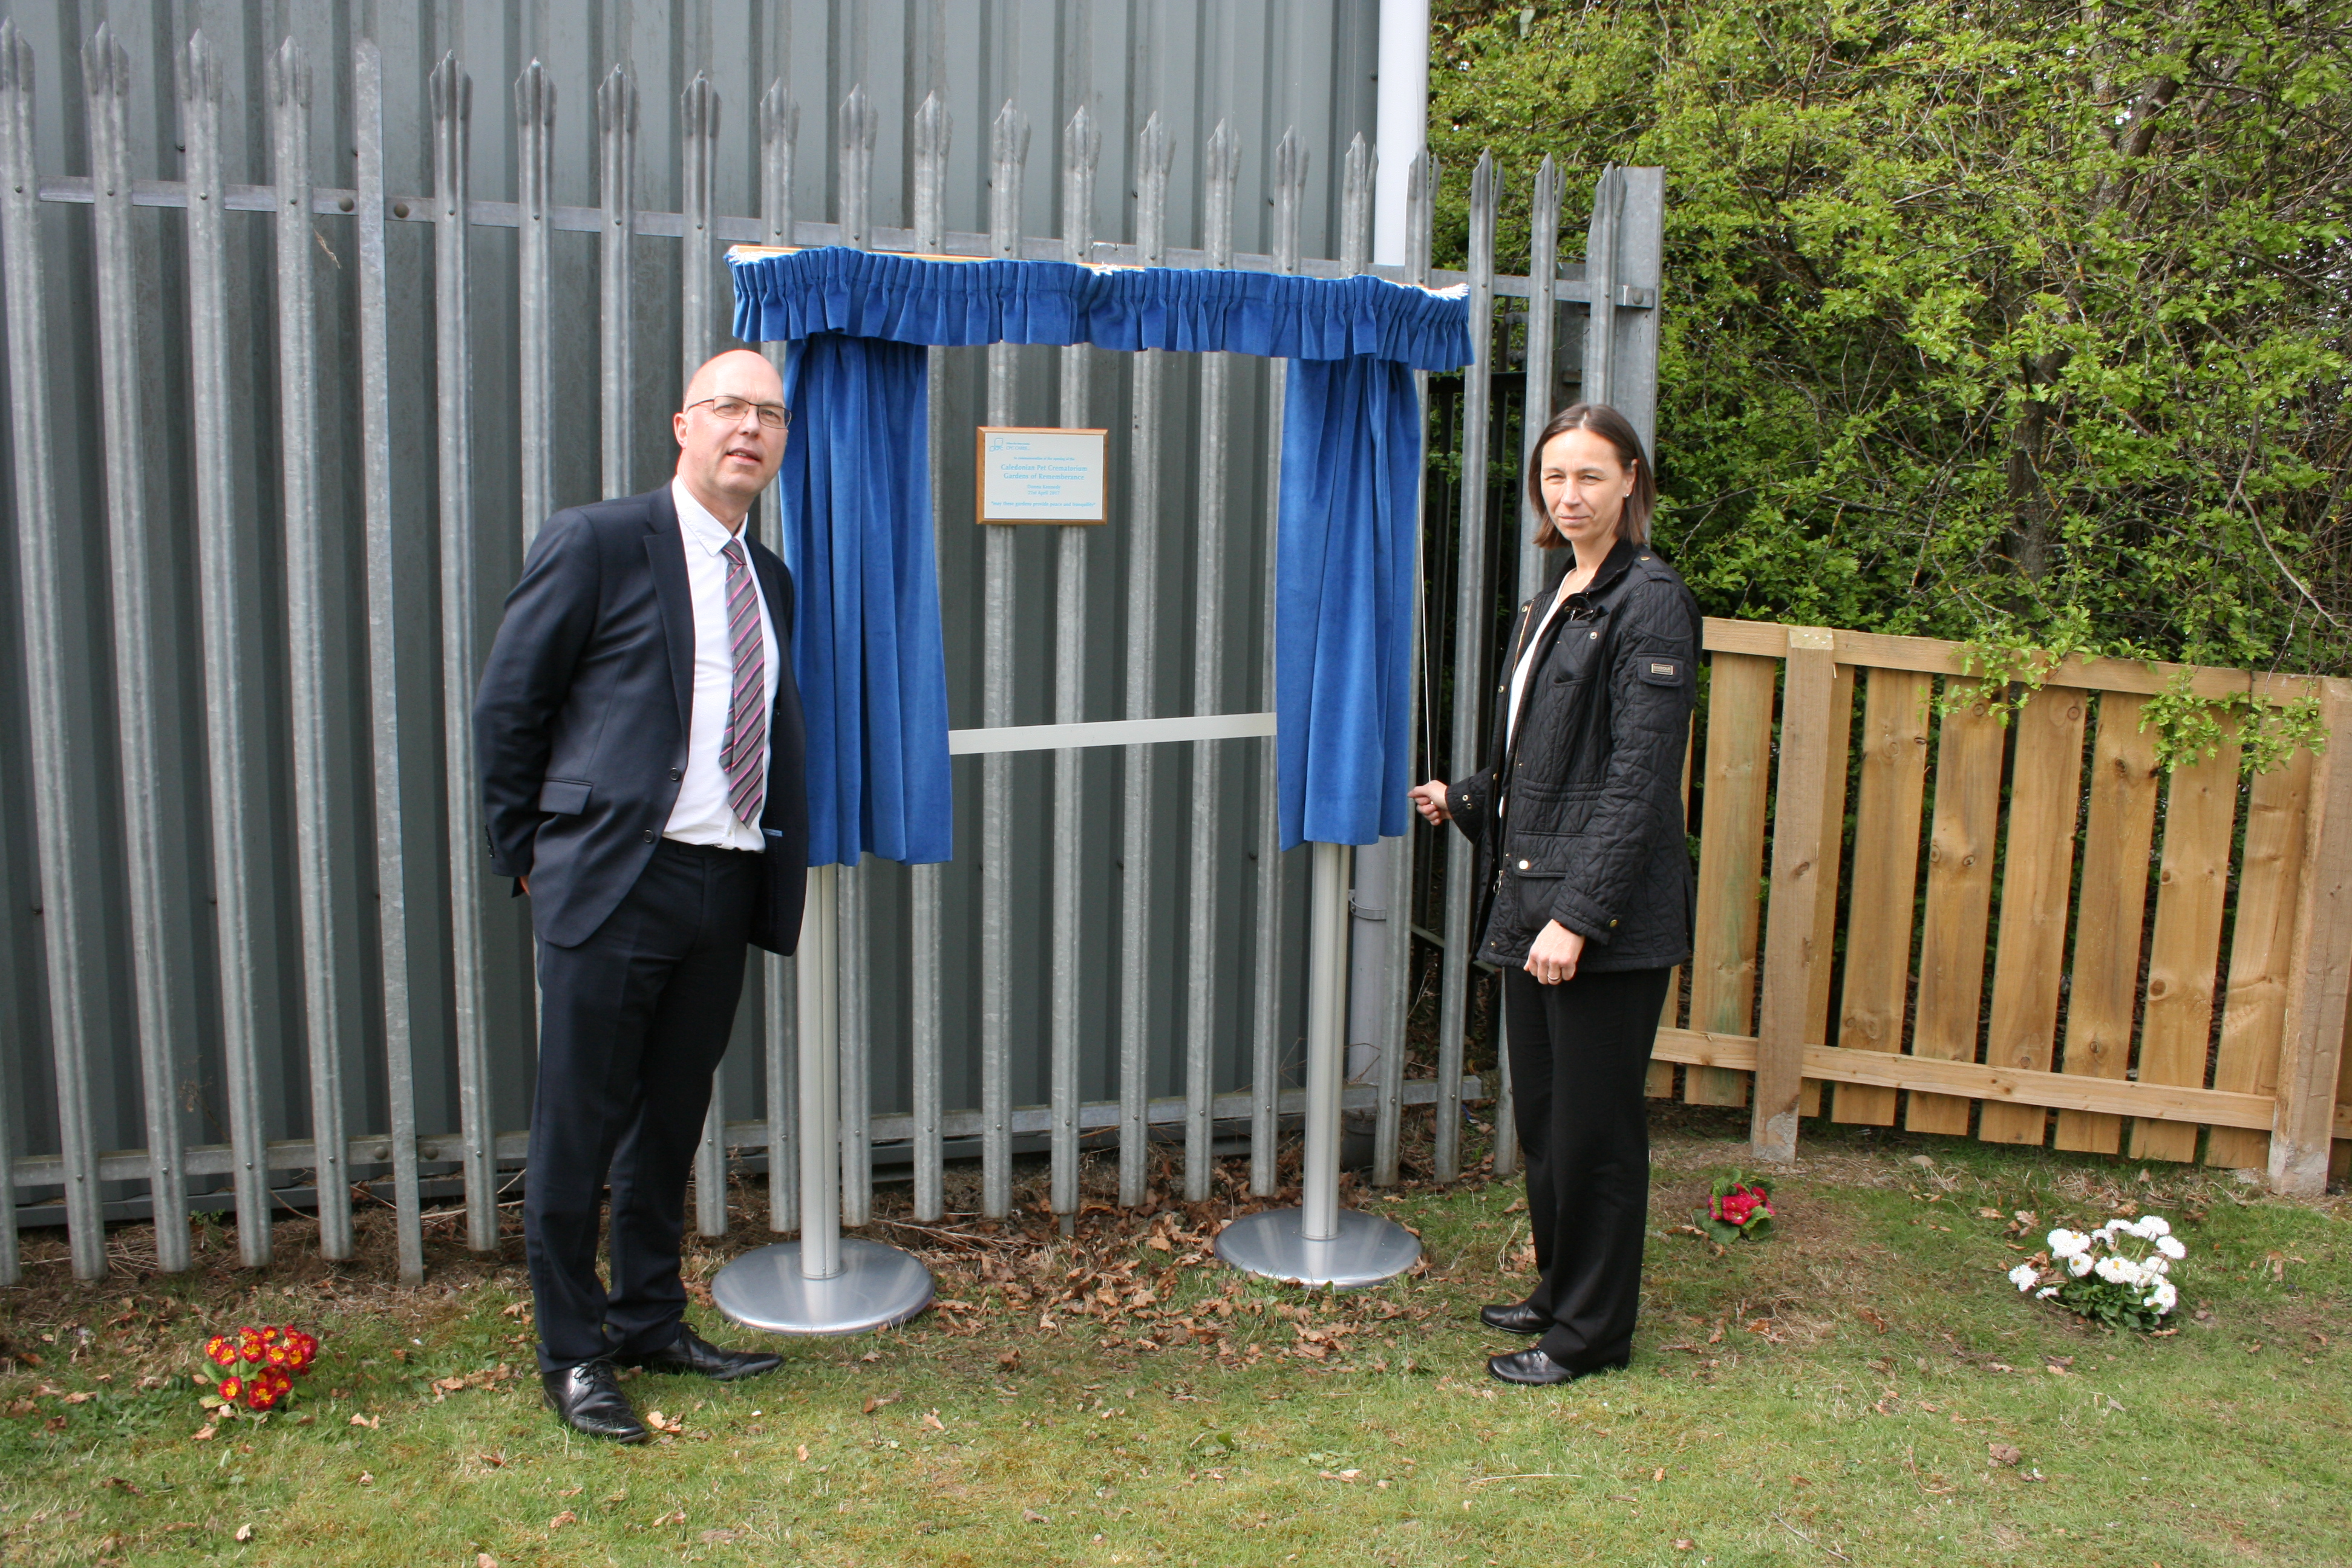 Mike Harvey & Donna Kennedy unveiling the plaque at the Livingston Garden of Remembrance